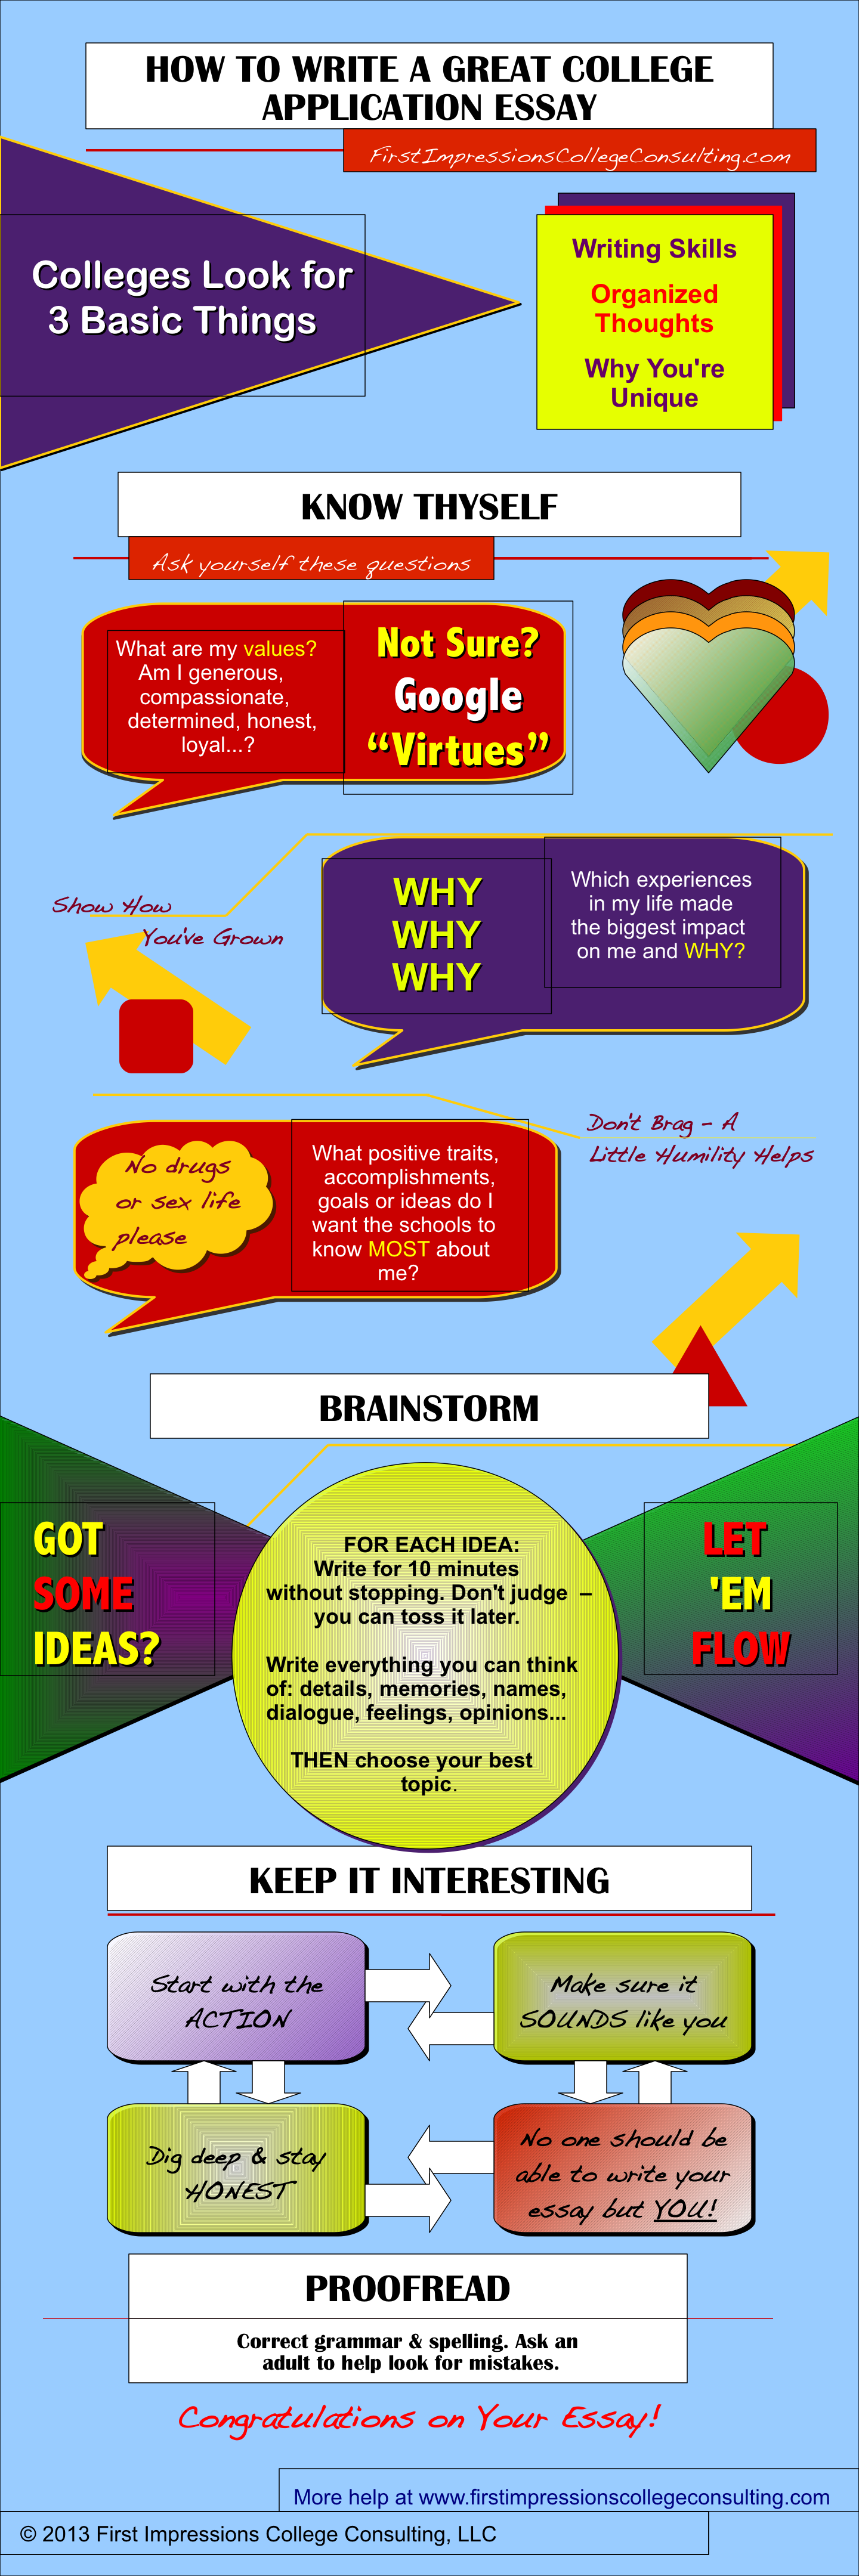 how to write a great college application essay infographic applying to college - Good College Essays Examples